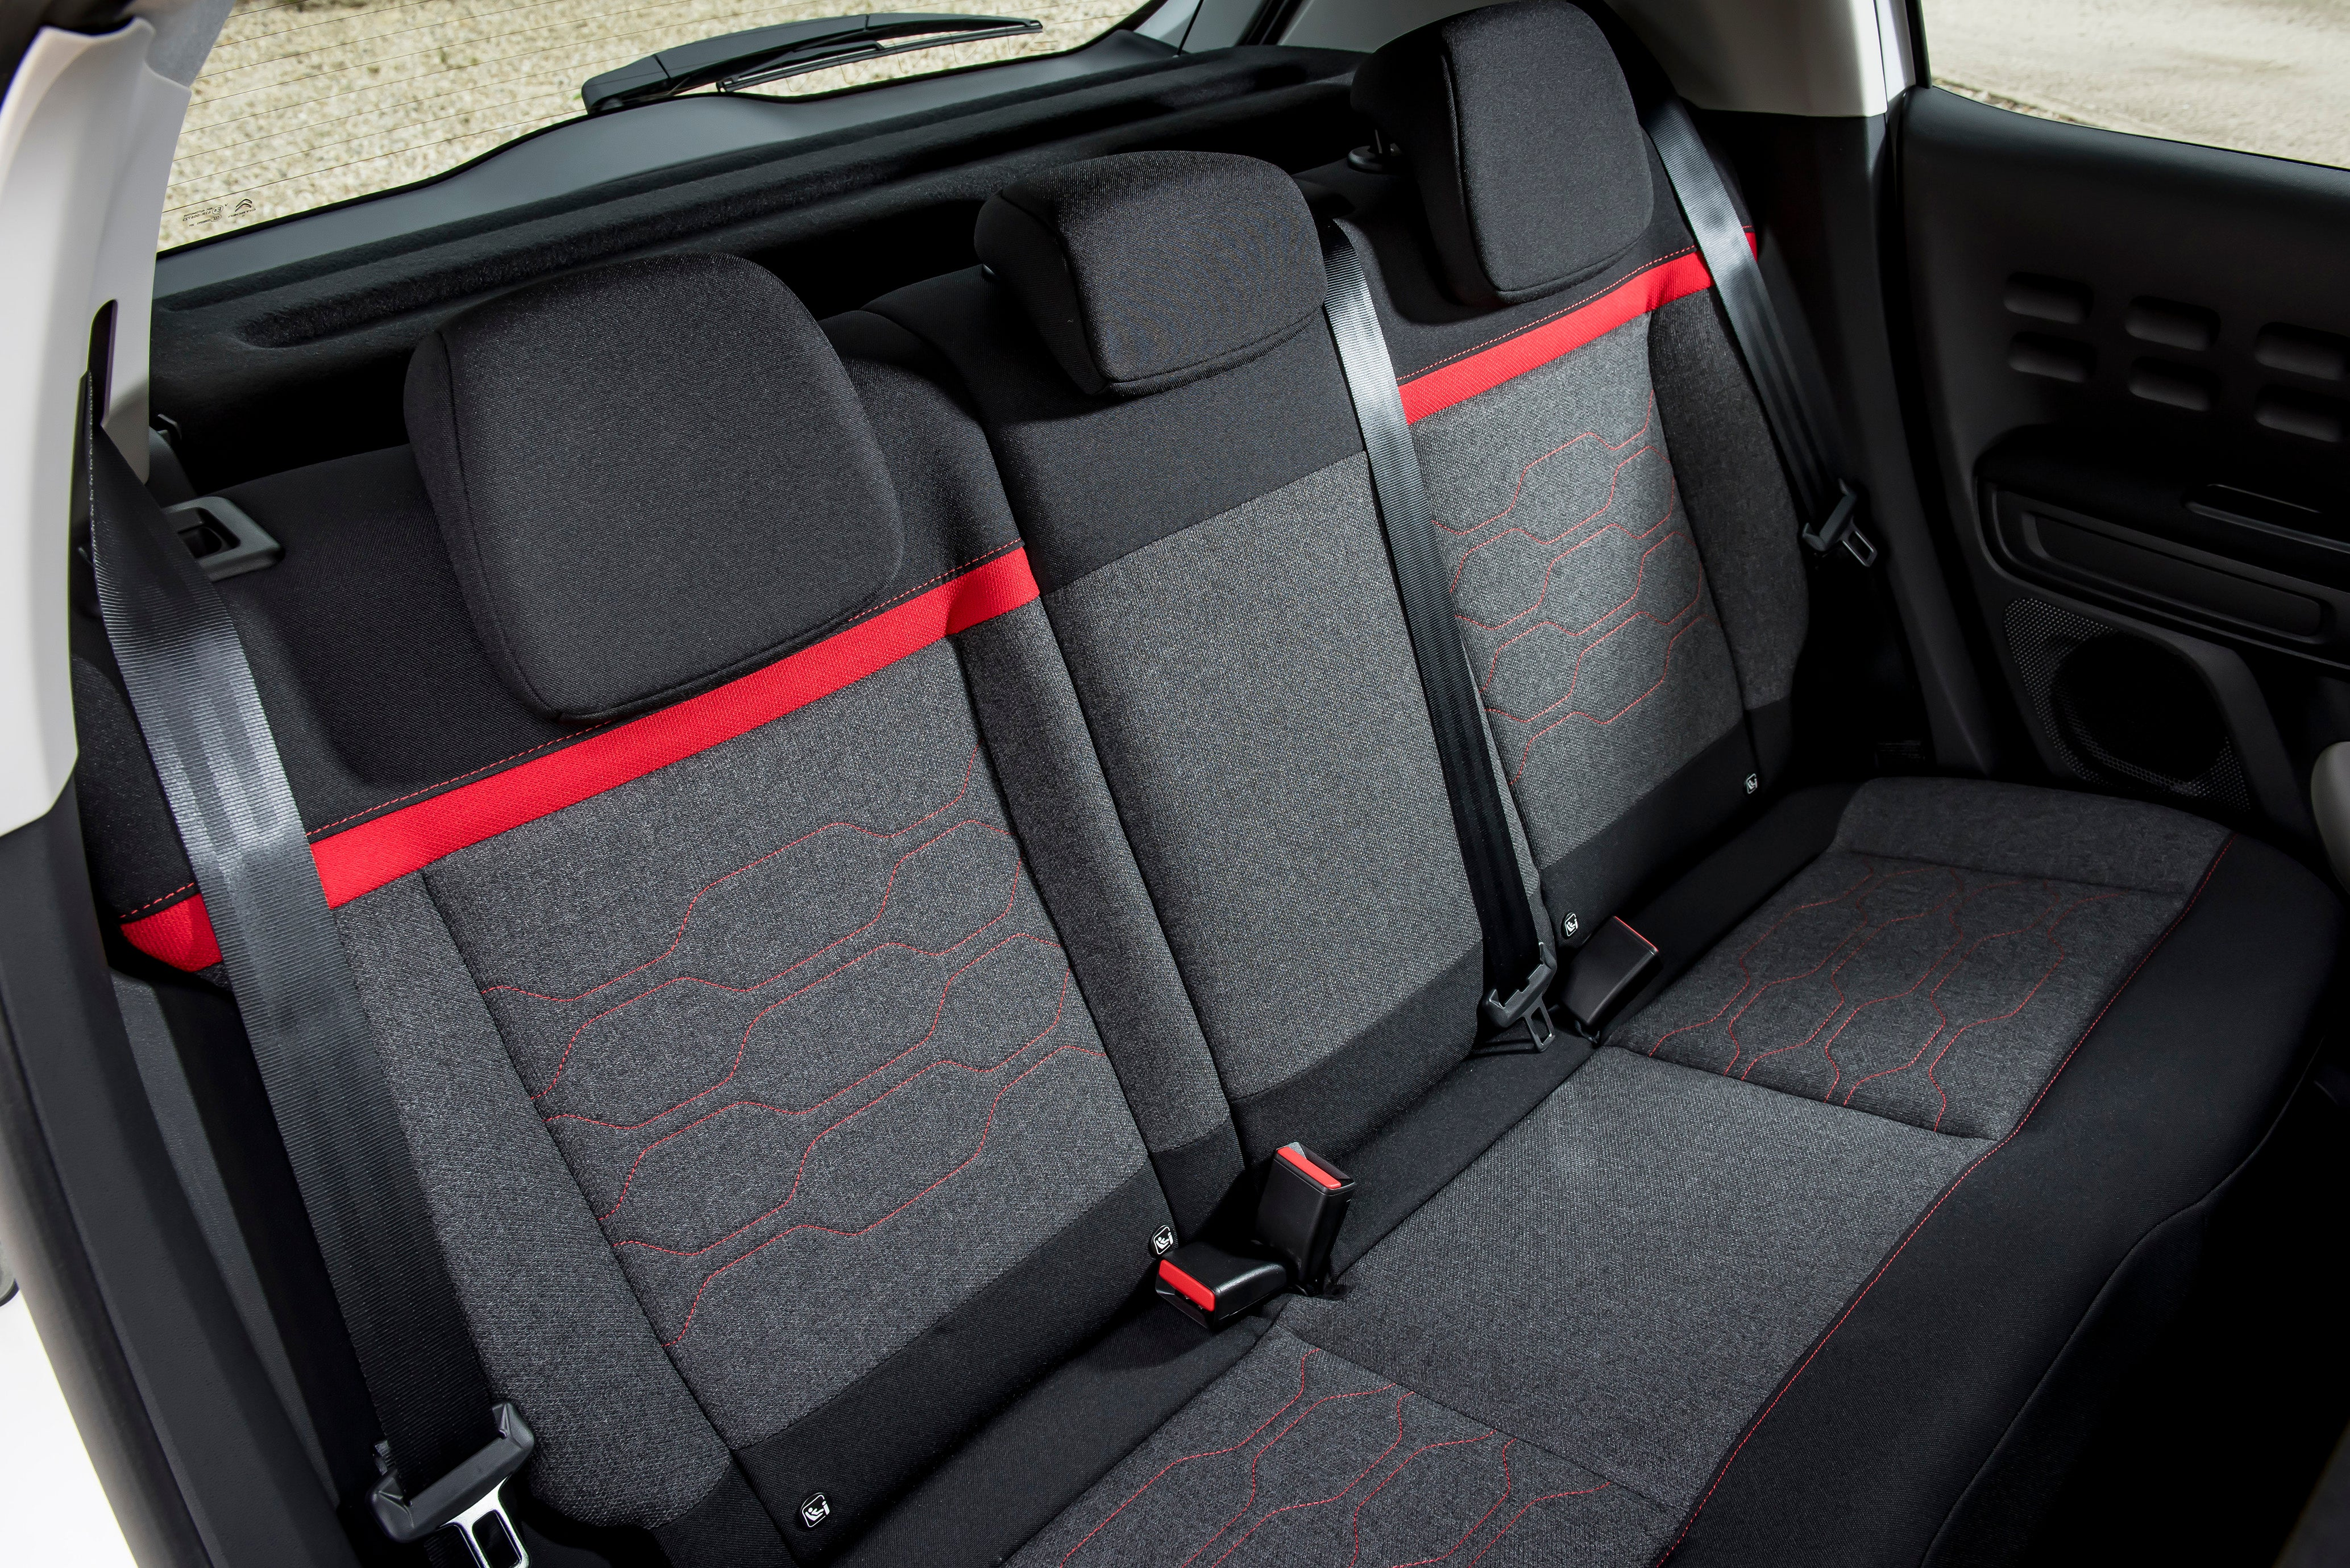 Citroen C3 Review 2021: Back seats and passenger space